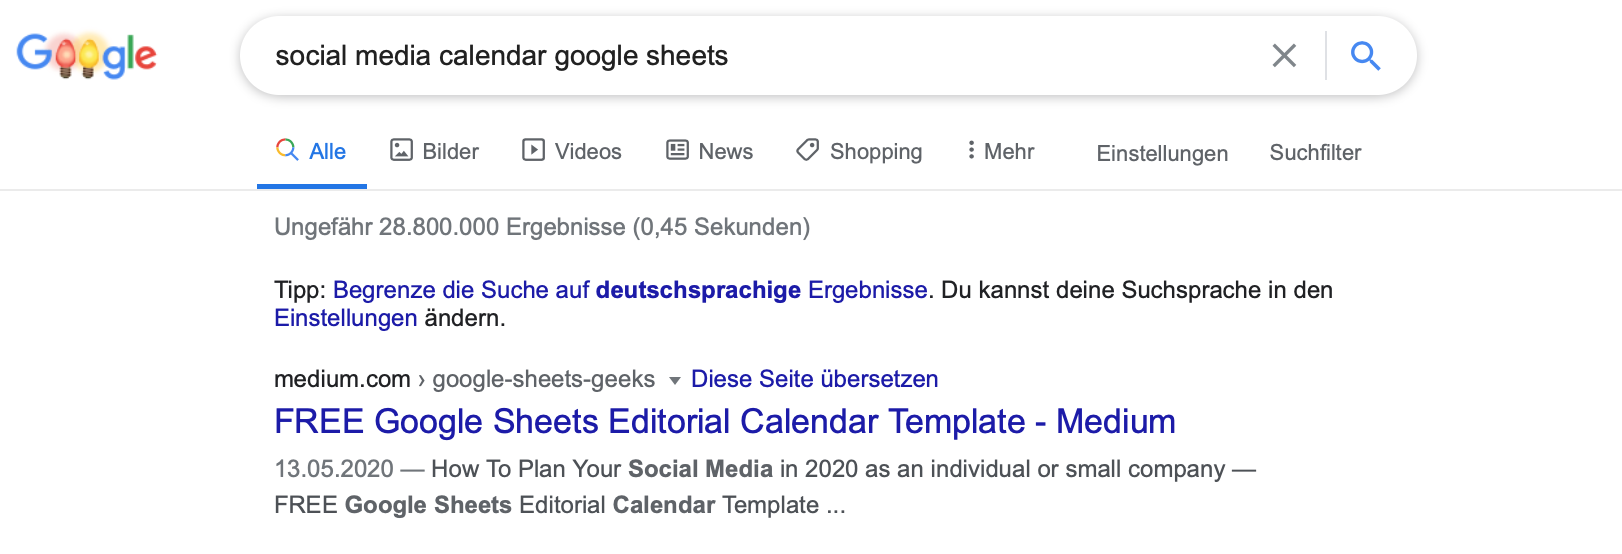 Screenshot of Google search: ranked at first position is my Google Sheets Editorial Calendar Template.